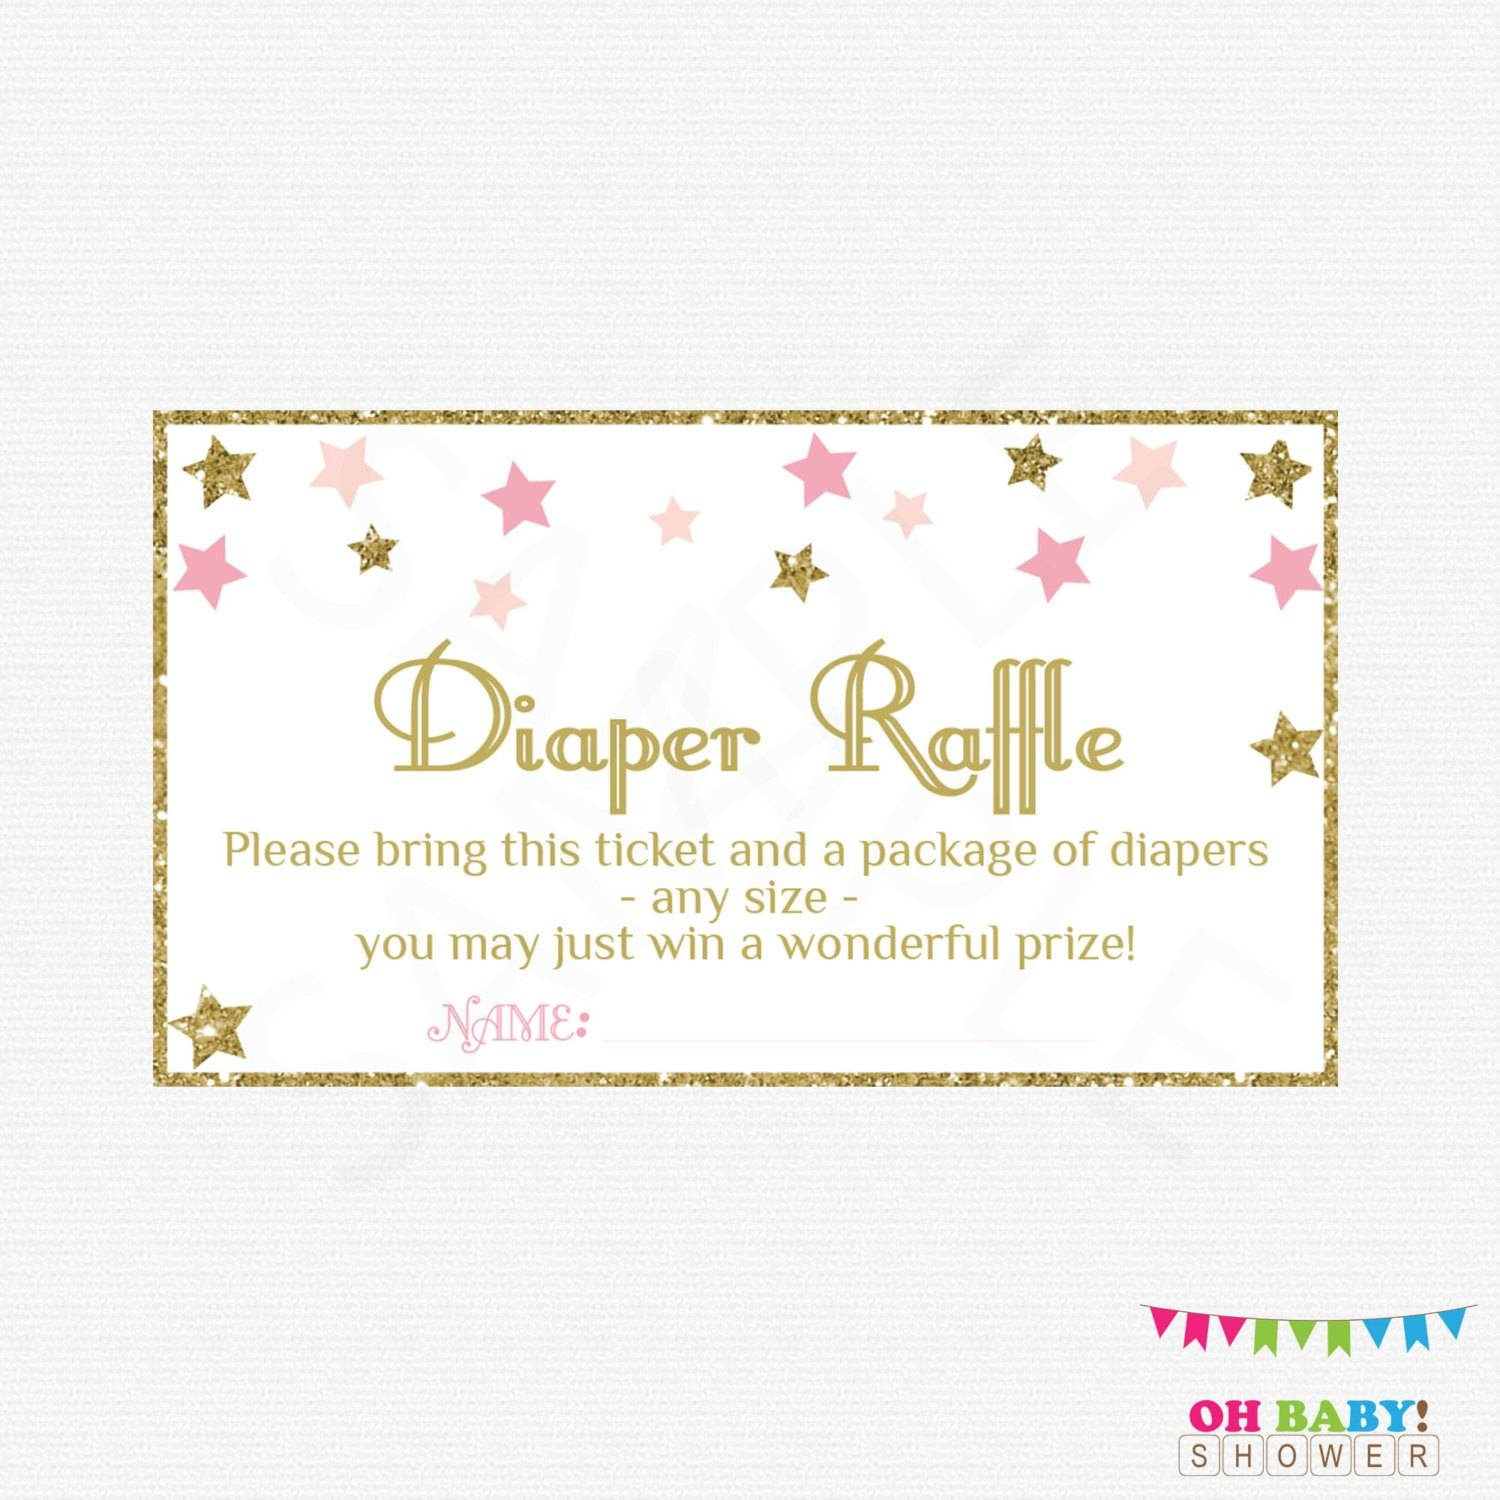 36 Cute Diaper Raffle Tickets | Kittybabylove - Free Printable Diaper Raffle Sign